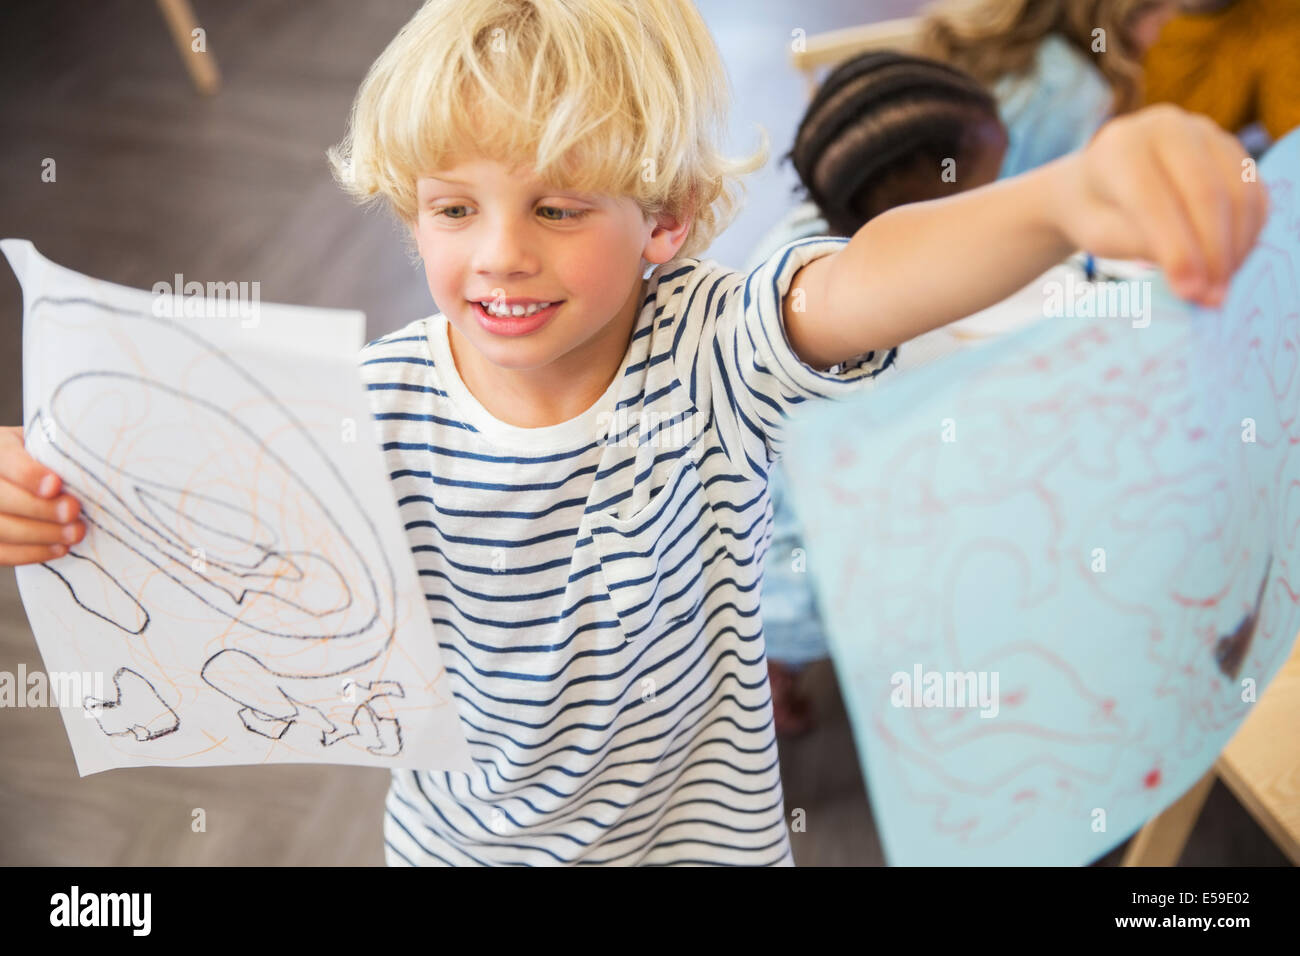 Student showing off drawings in classroom - Stock Image